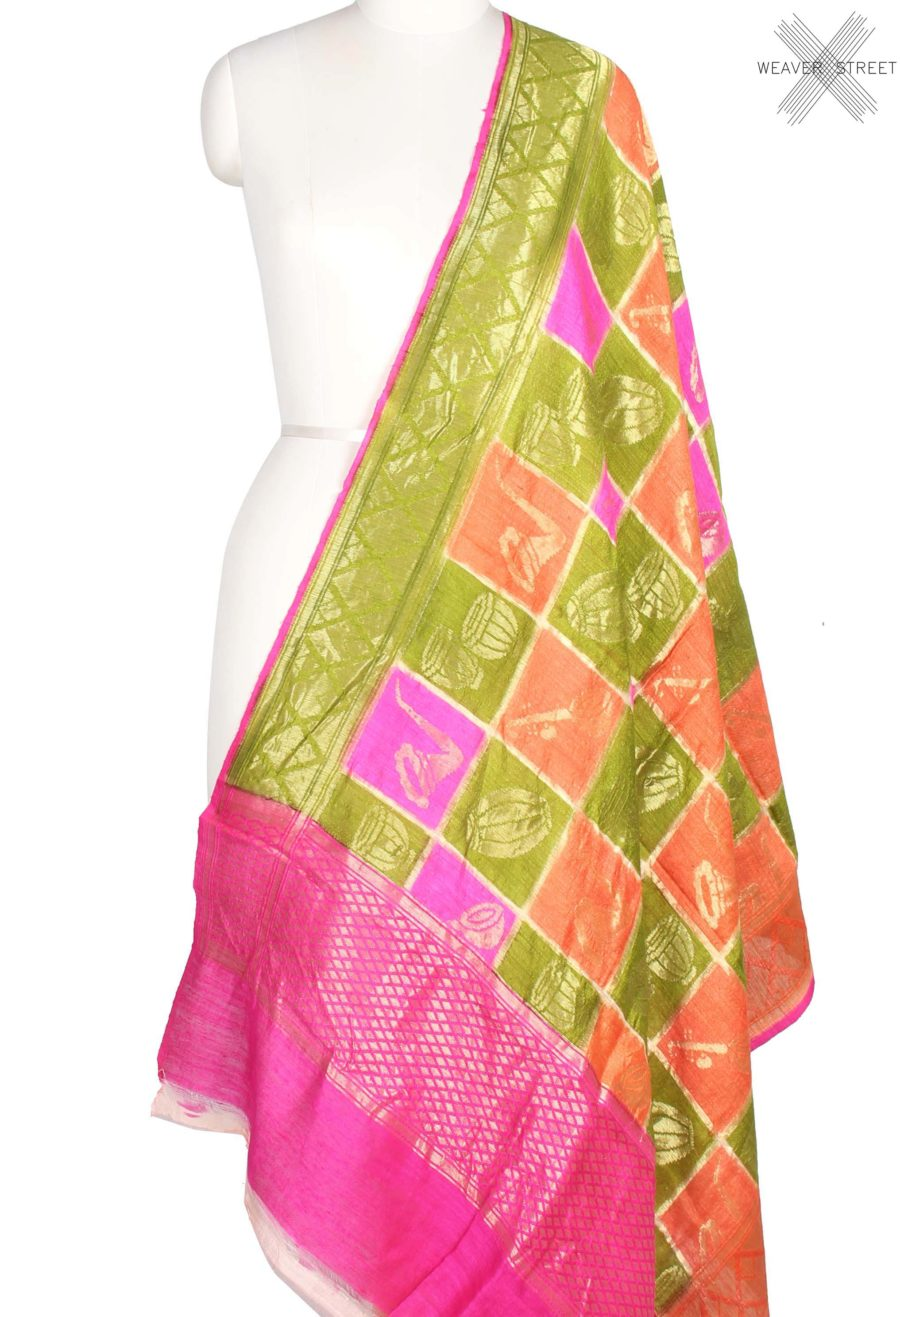 Multi color Dupion Silk Banarasi Dupatta with musical instruments motifs (1) main